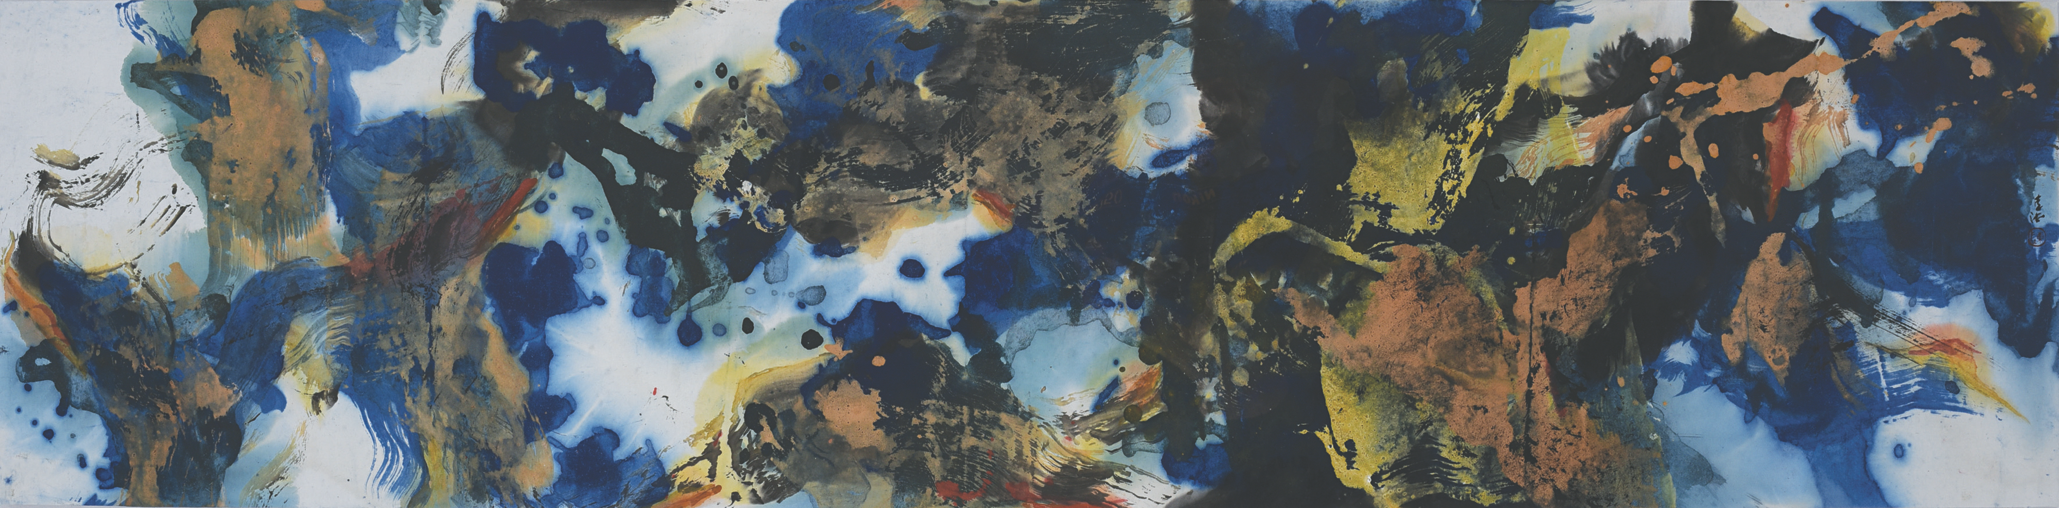 Henri Chen Kezhan, Untitled, ink and colour pigment on rice paper, 40 x 138 cm